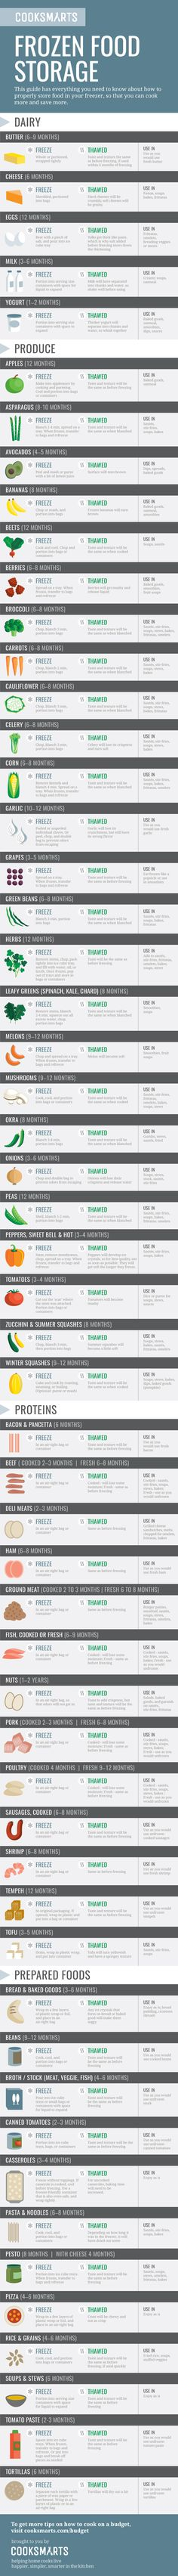 Everything you need to know about how to properly store food in your freezer and #reducefoodwaste. | Frozen Food Storage #infographic via @cooksmarts #EarthMonth